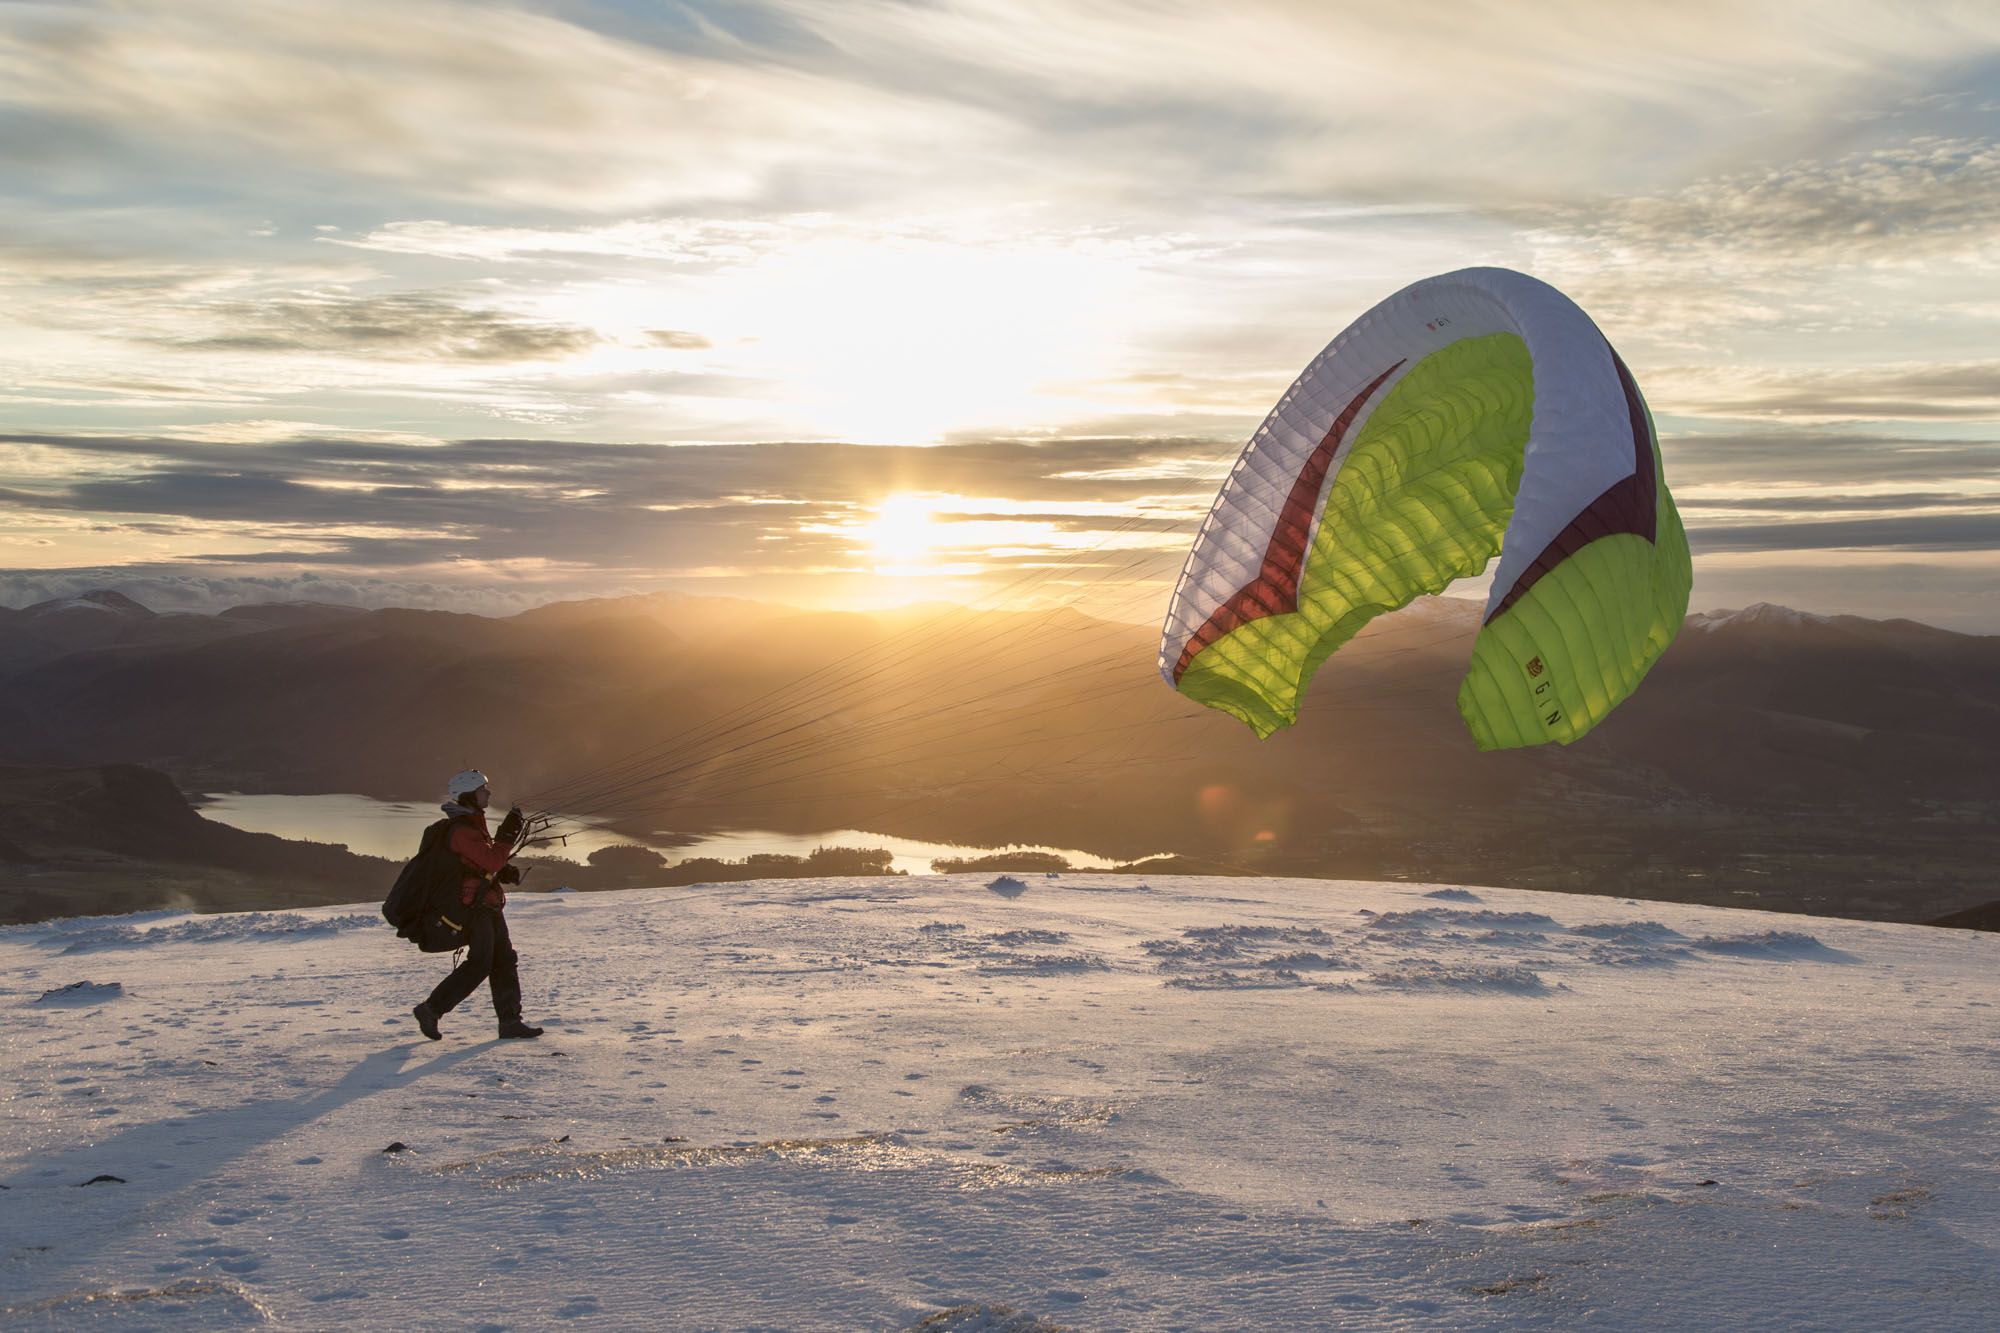 Sunset paraglider launching from Blencathra. Canon 5D MkIII, 24-105mm at 35mm, ISO 400, 1/320 sec at f/7.1, November. © Stuart Holmes.